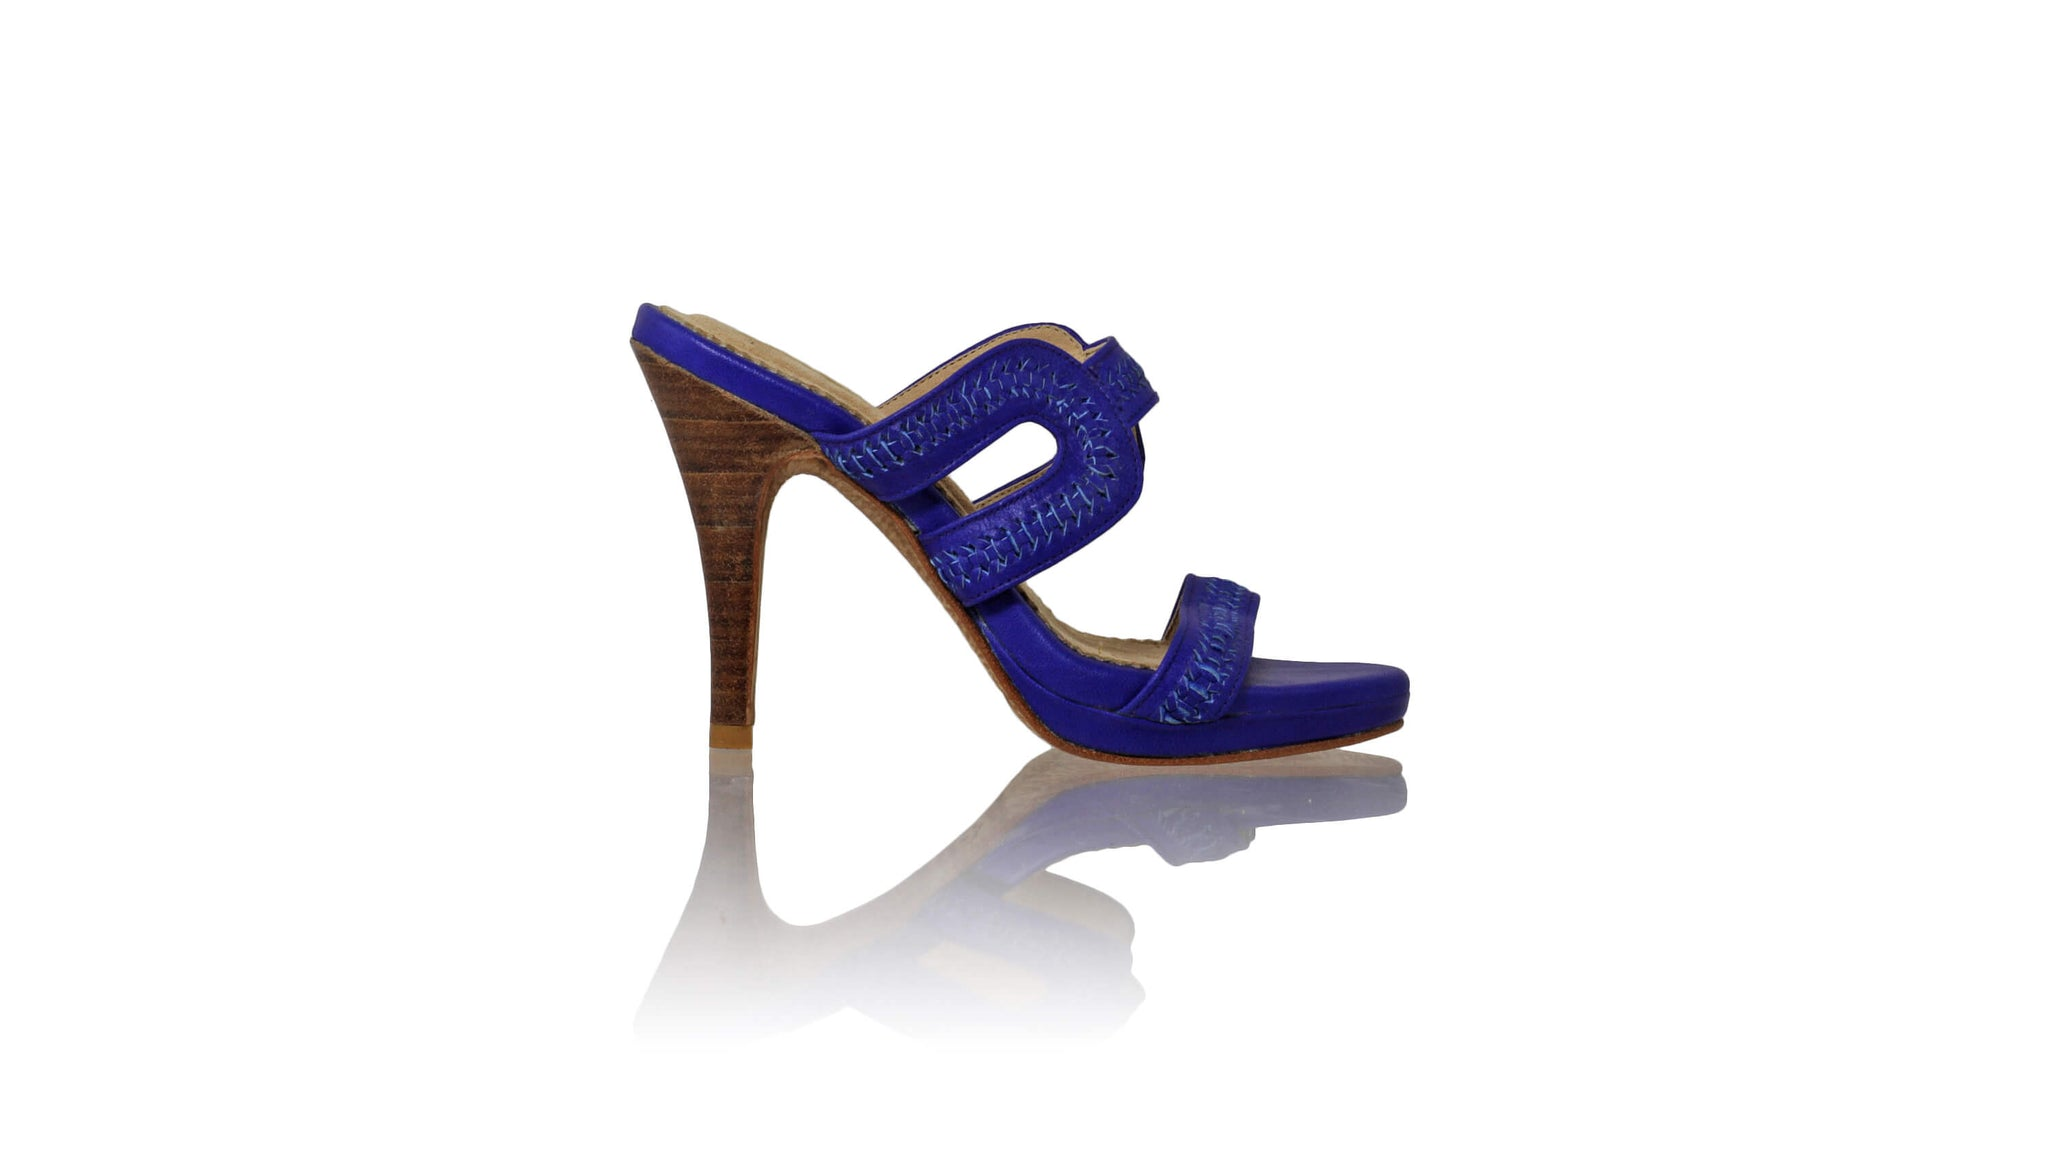 Leather-shoes-Tamie 115mm SH PF - Royal Blue-sandals higheel-NILUH DJELANTIK-NILUH DJELANTIK